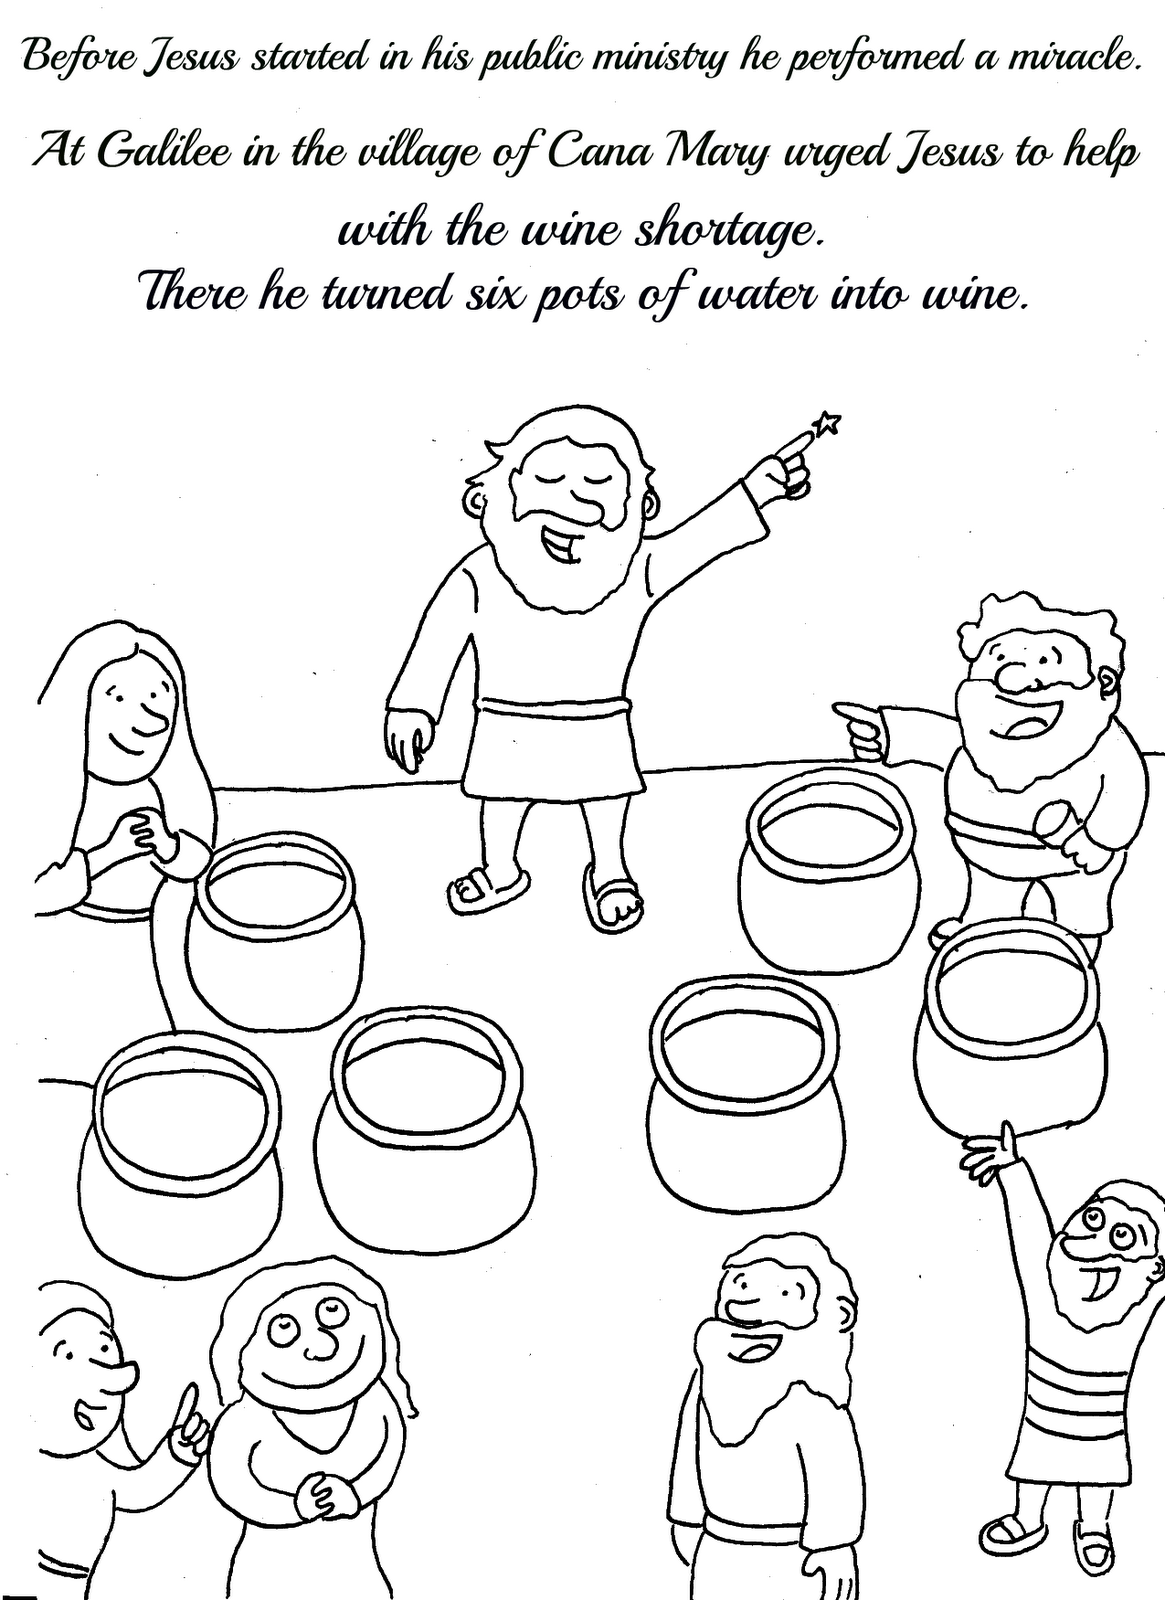 lesbian wedding coloring pages | Favour in Fun: Miracles of Jesus Activity Book